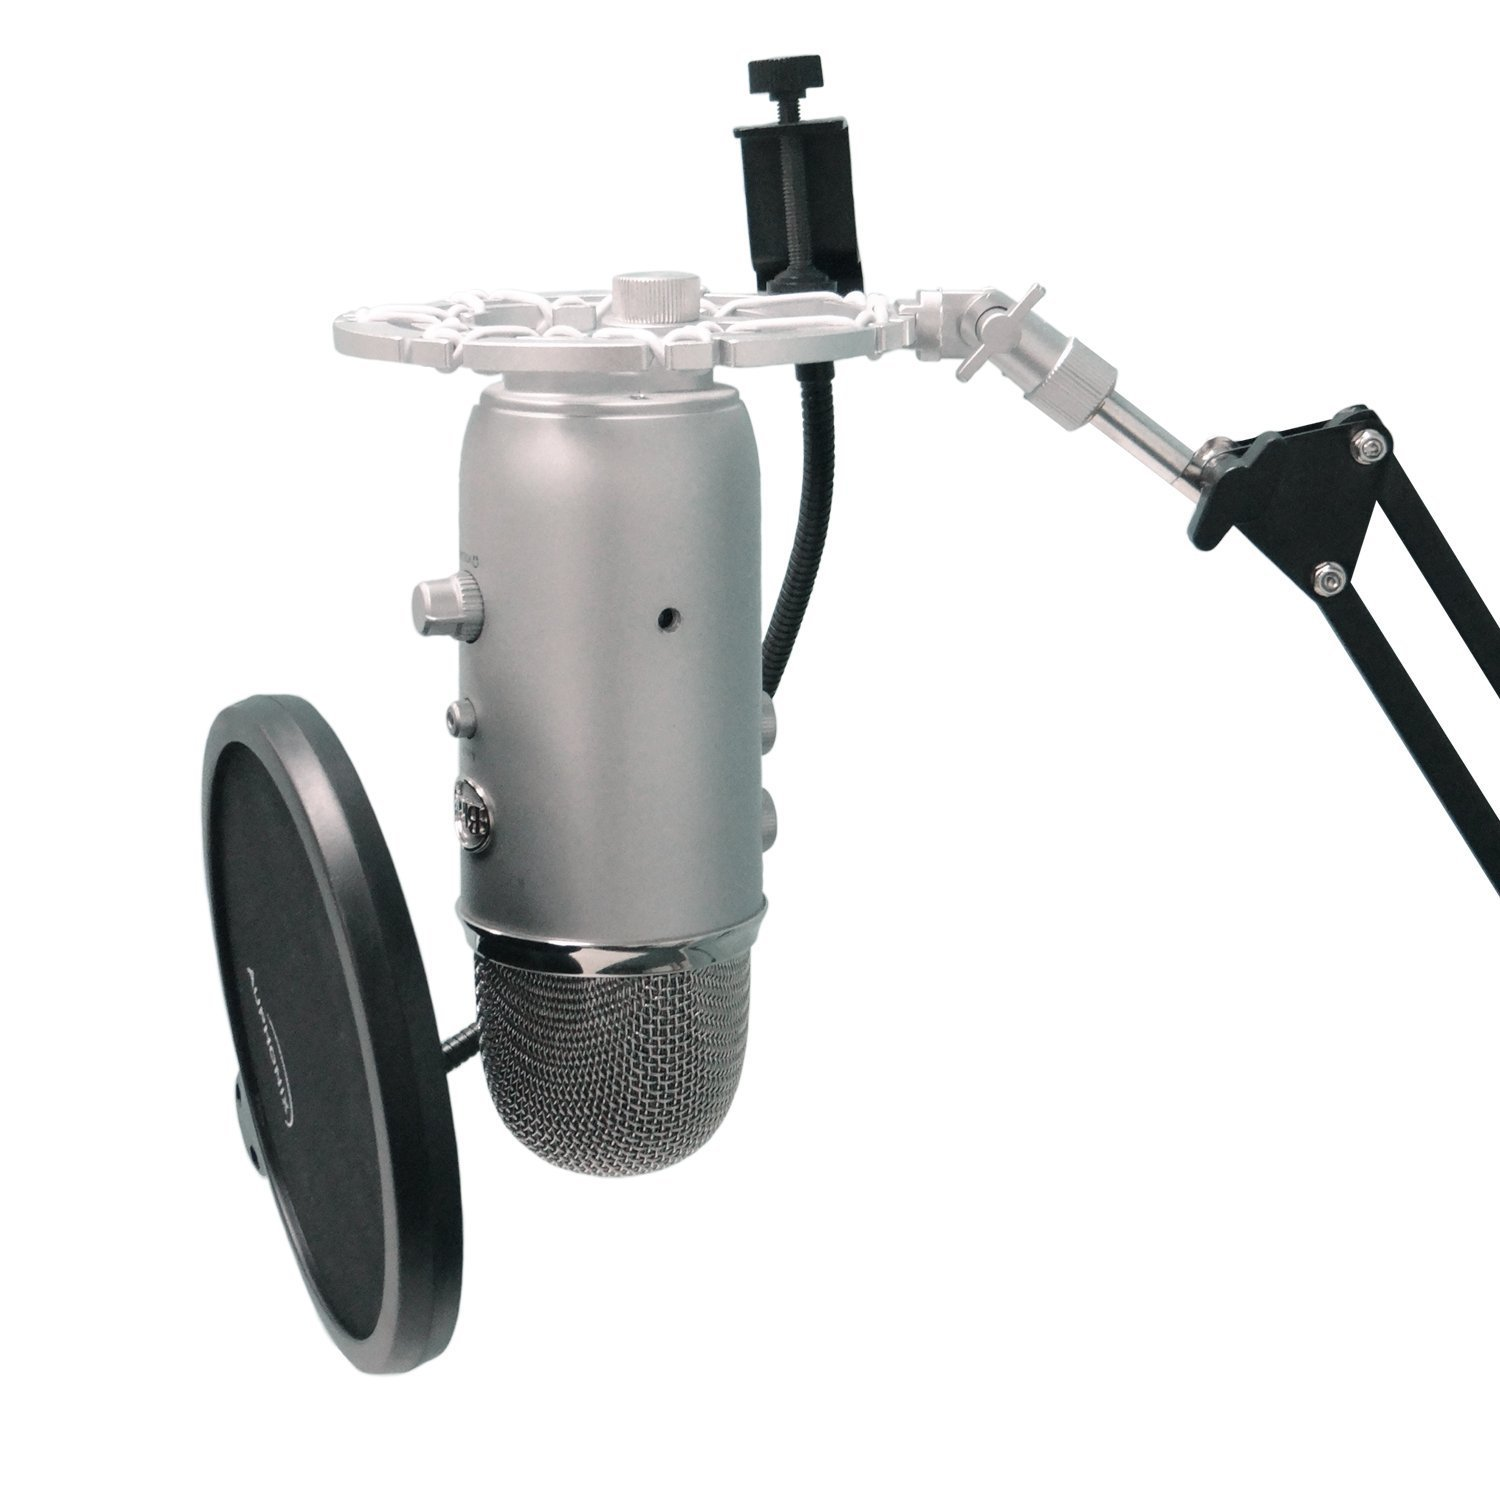 Silver Shock Mount For Blue Yeti and Blue Snowball Mics Eliminates Noises From External Vibration